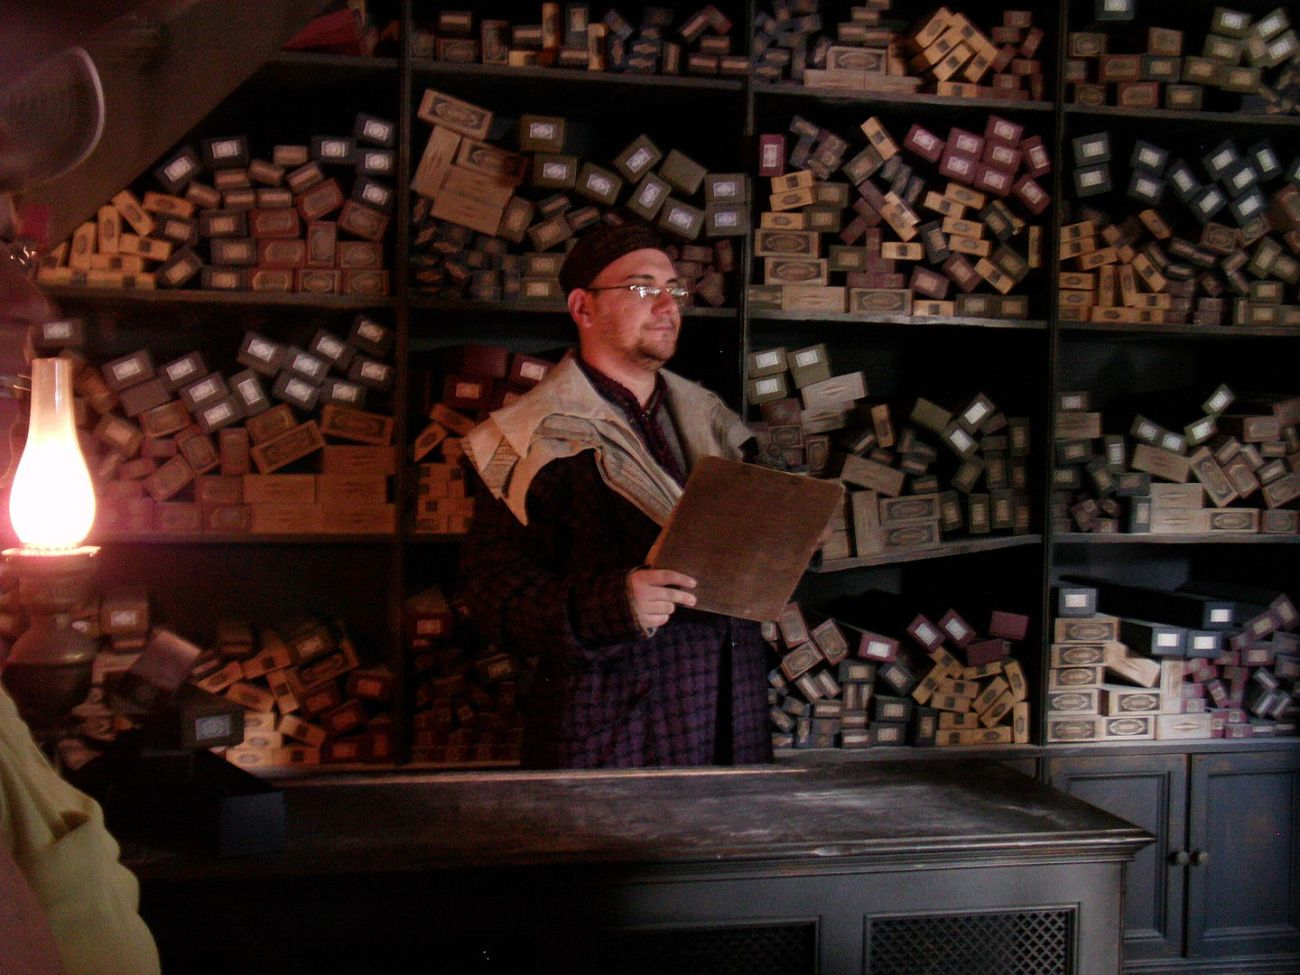 Ollivanders Wand Shop at Harry Potter World Universal Studios Florida